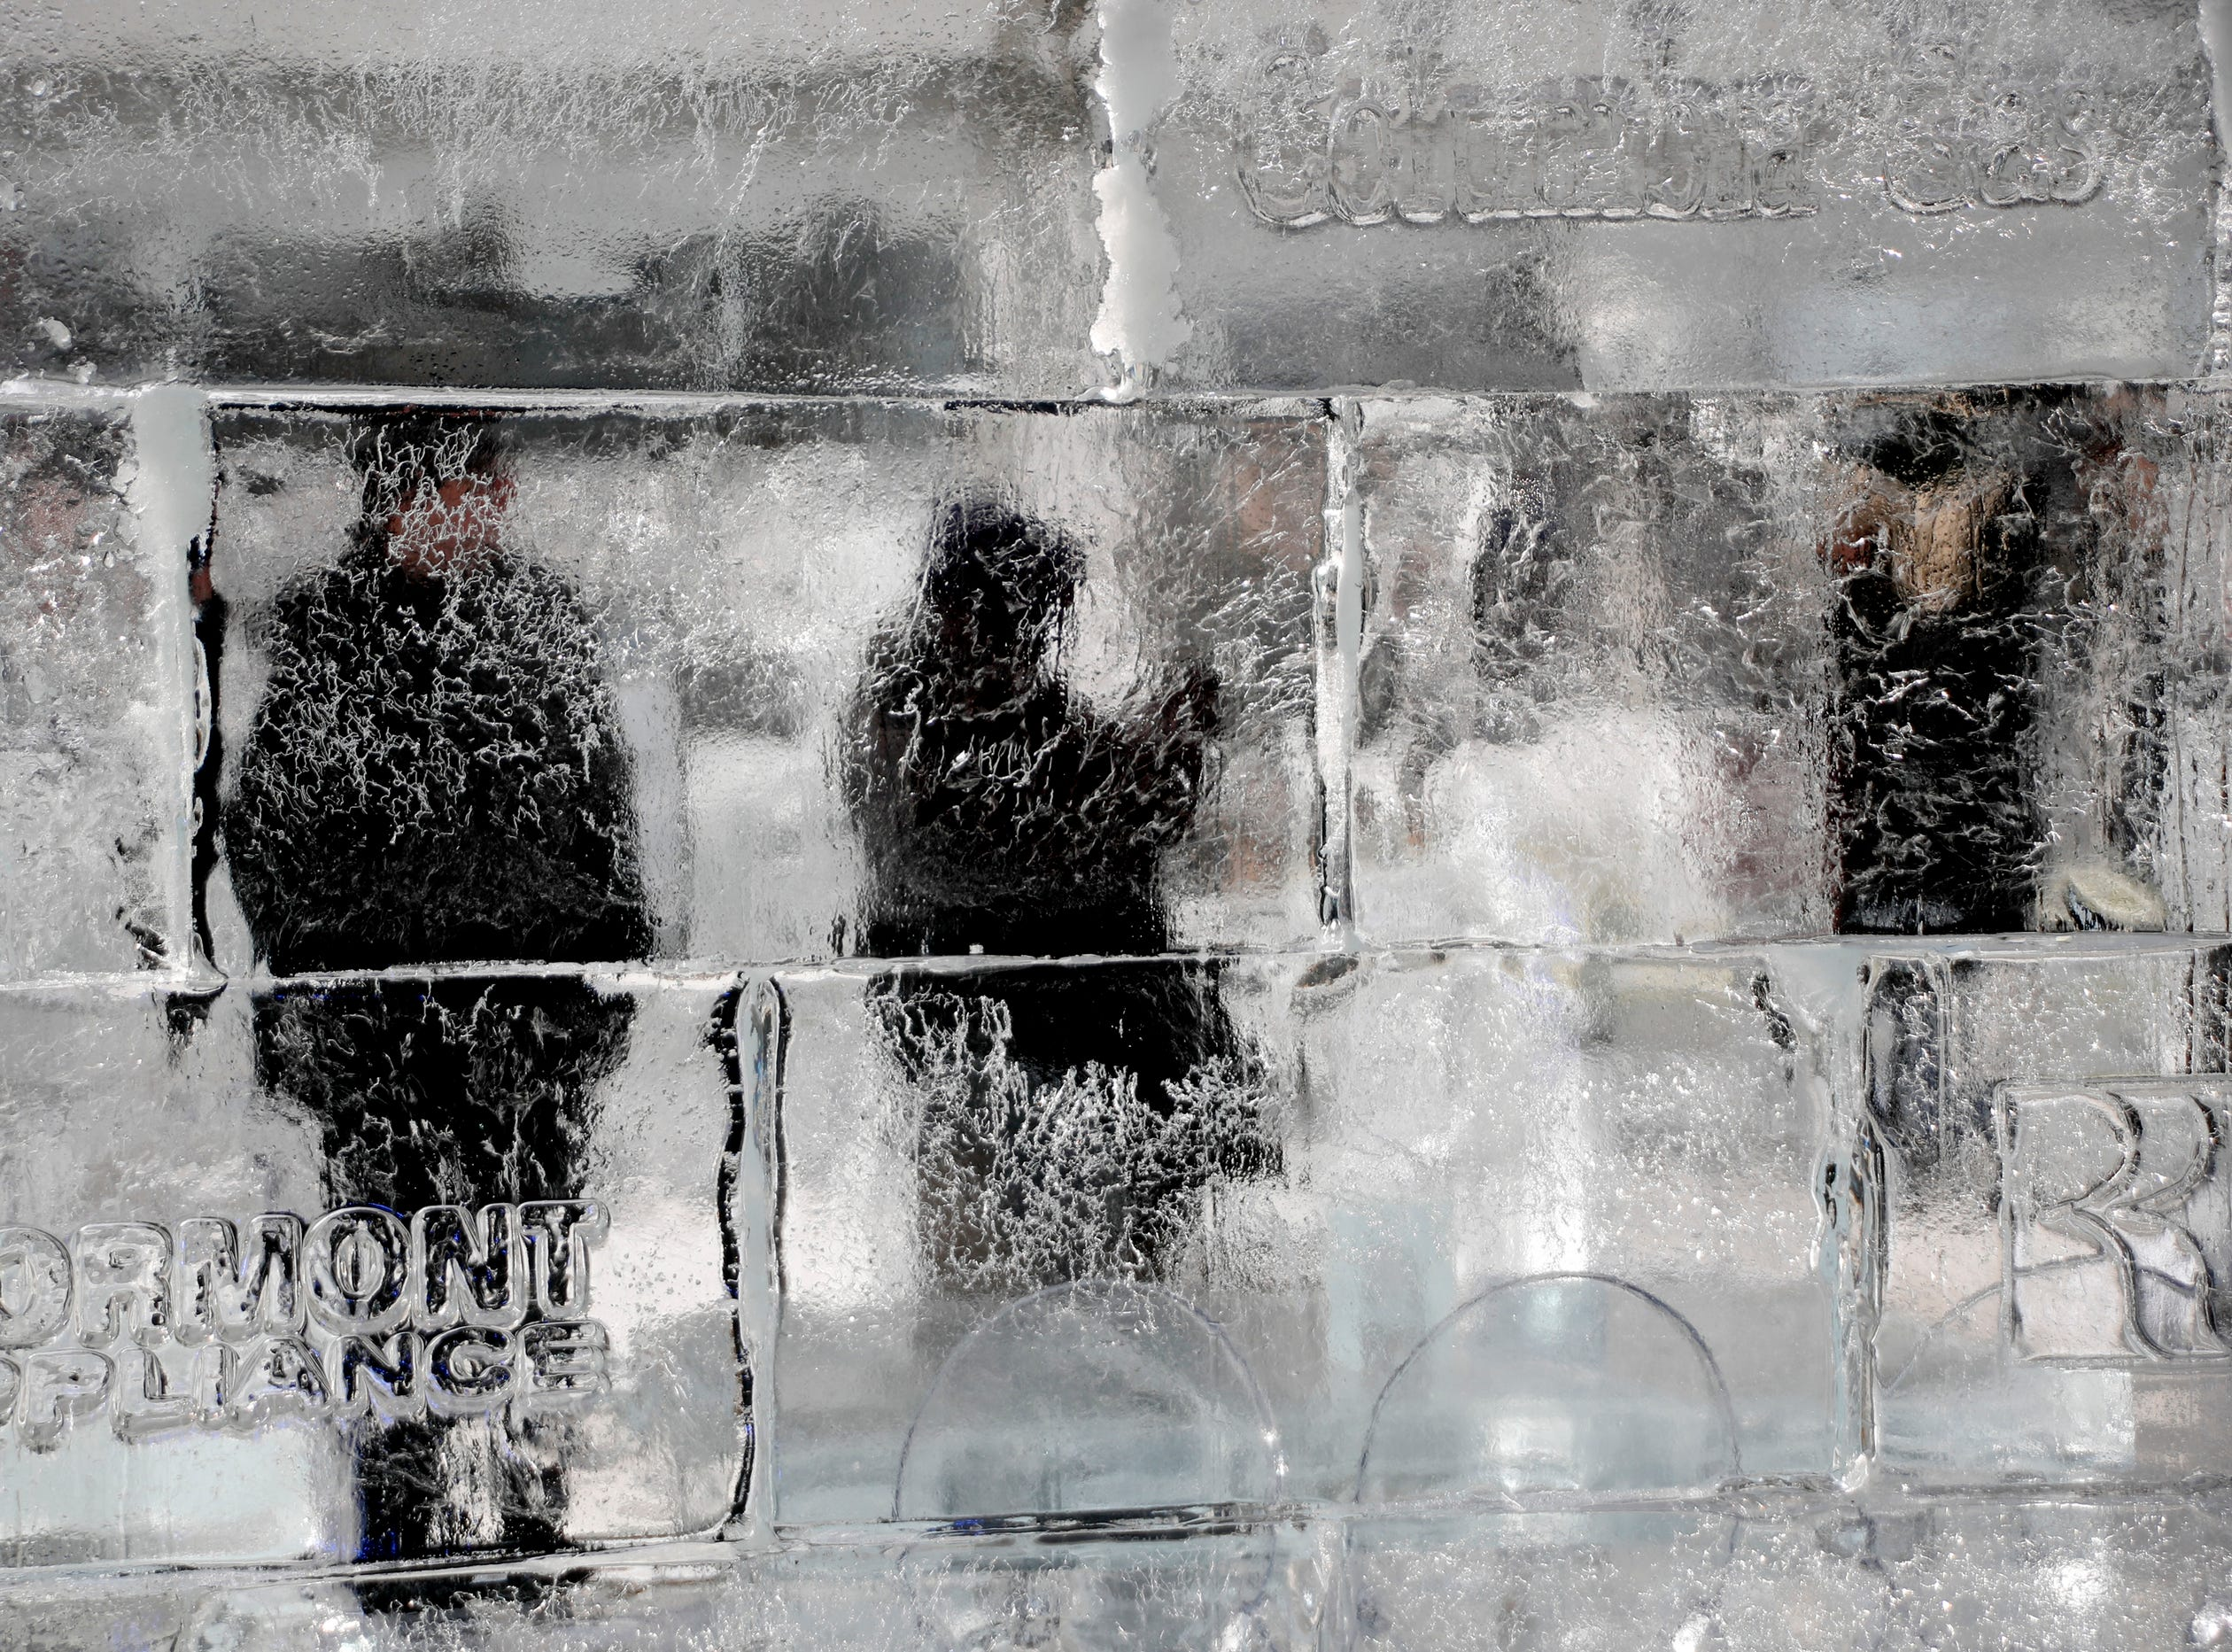 People visiting the ice house for the fifth annual Dollar Energy Fund Cool Down for Warmth event are visible through ice blocks on Friday, Jan. 25, 2019, in Pittsburgh. The program promotes awareness for families who go without heat in winter months, trying to raise money for utility assistance grants.